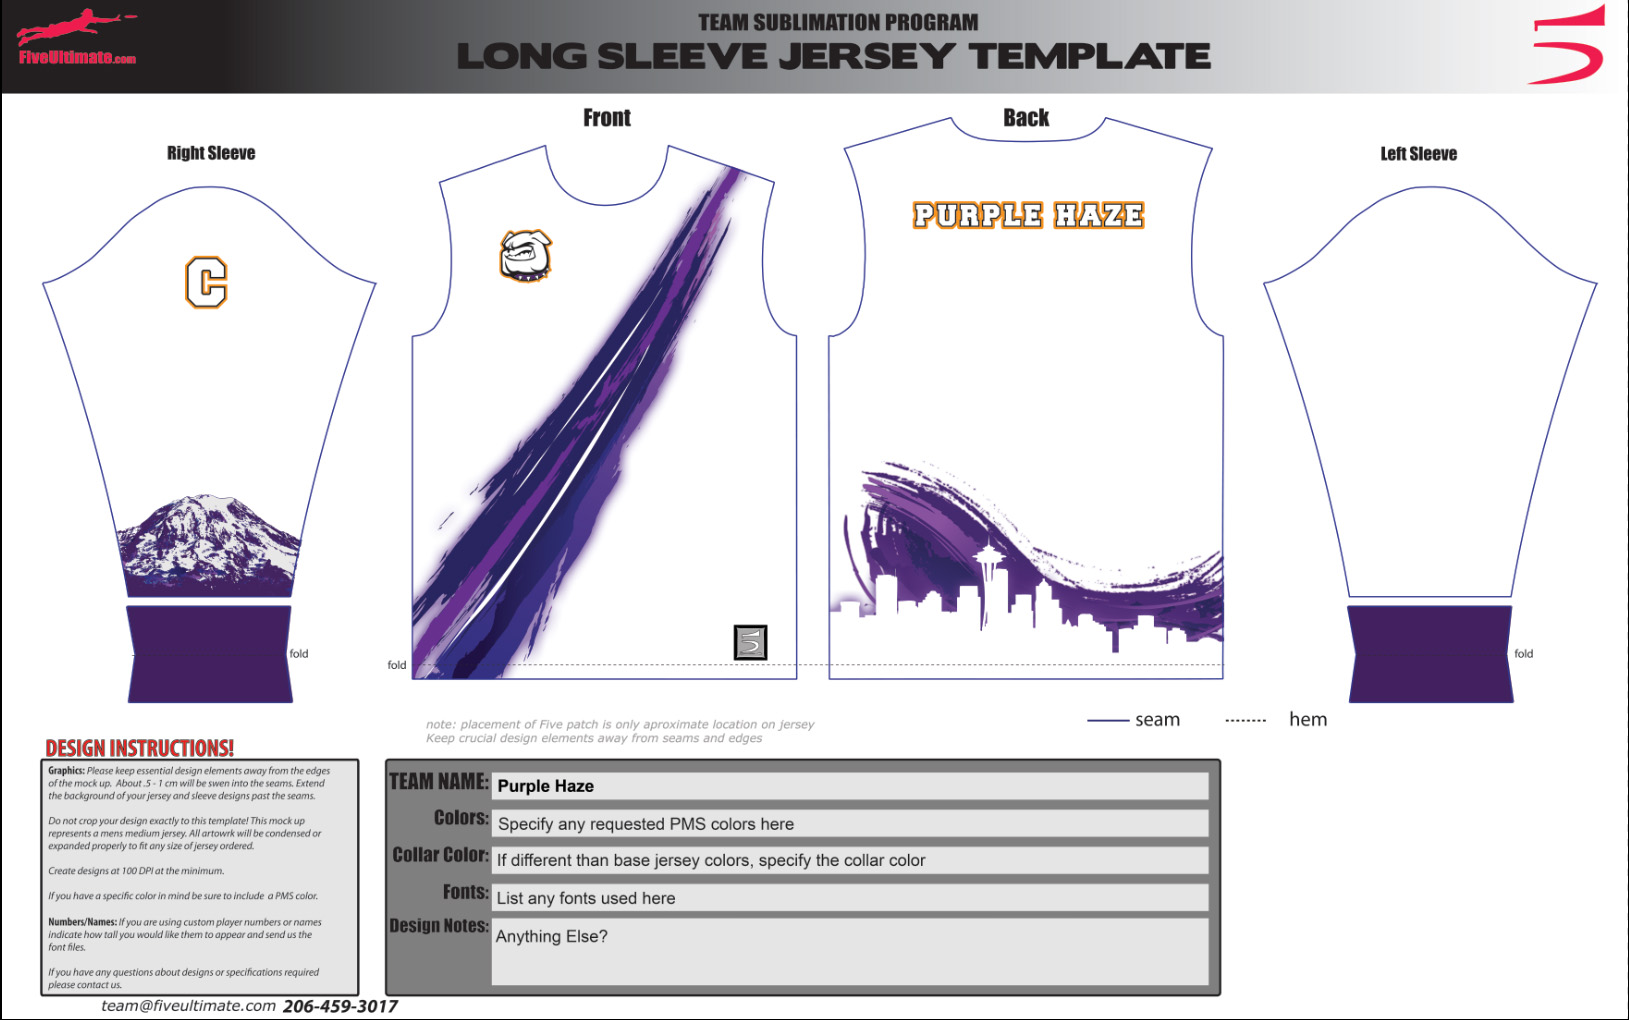 t-shirt template microsoft word, order form templates for word, t shirt order form in word, t-shirt template for word, contest entry form template word, t shirt order form printable, on t shirt order form word template